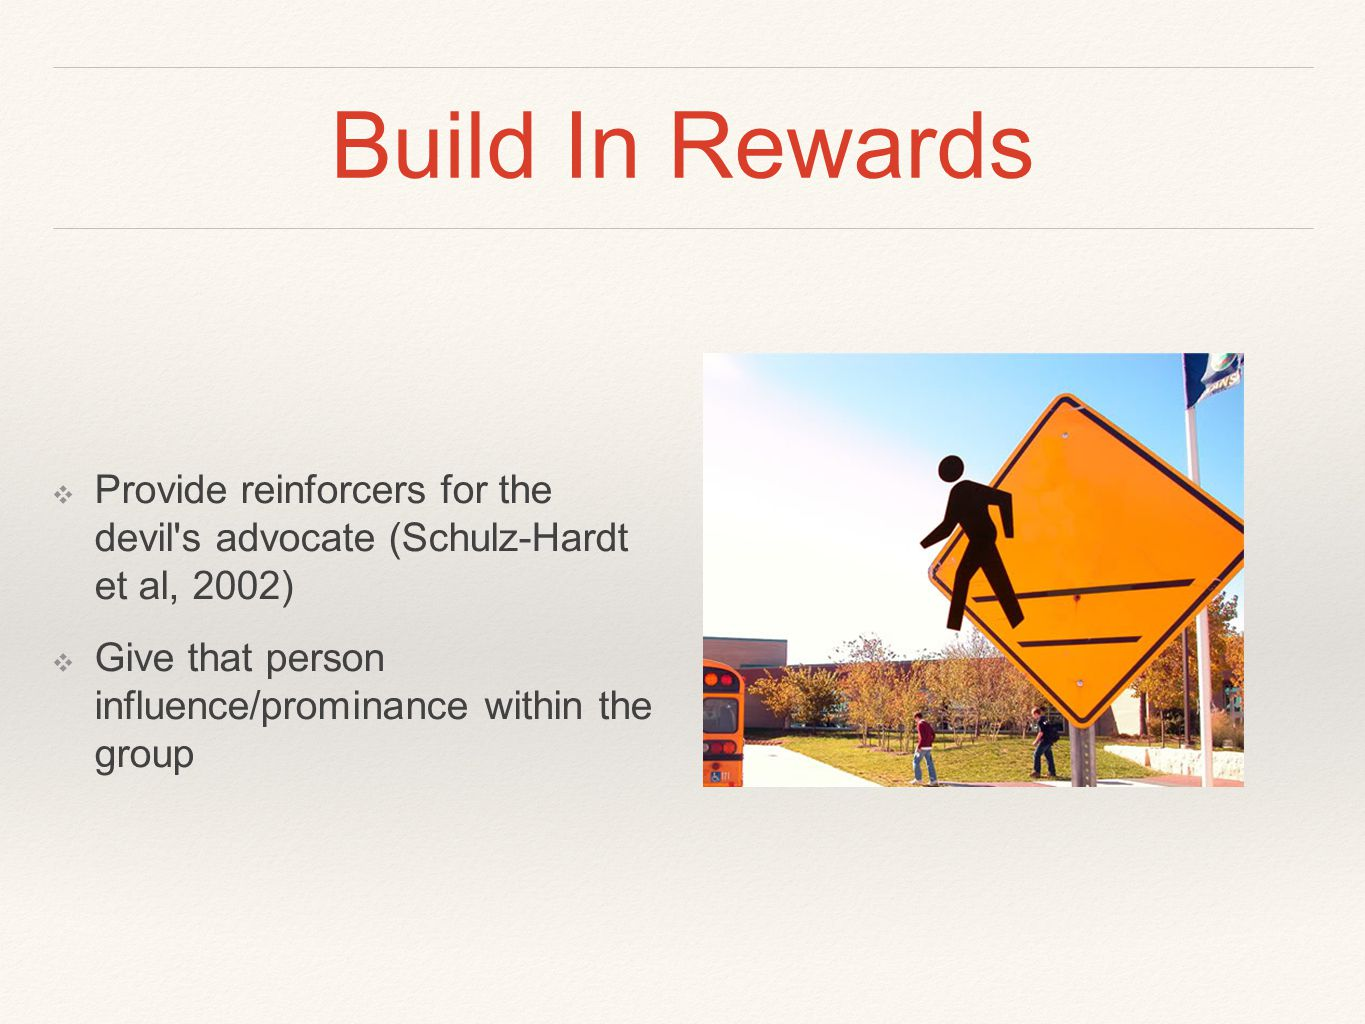 Build In Rewards ❖ Provide reinforcers for the devil's advocate (Schulz-Hardt et al, 2002) ❖ Give that person influence/prominance within the group